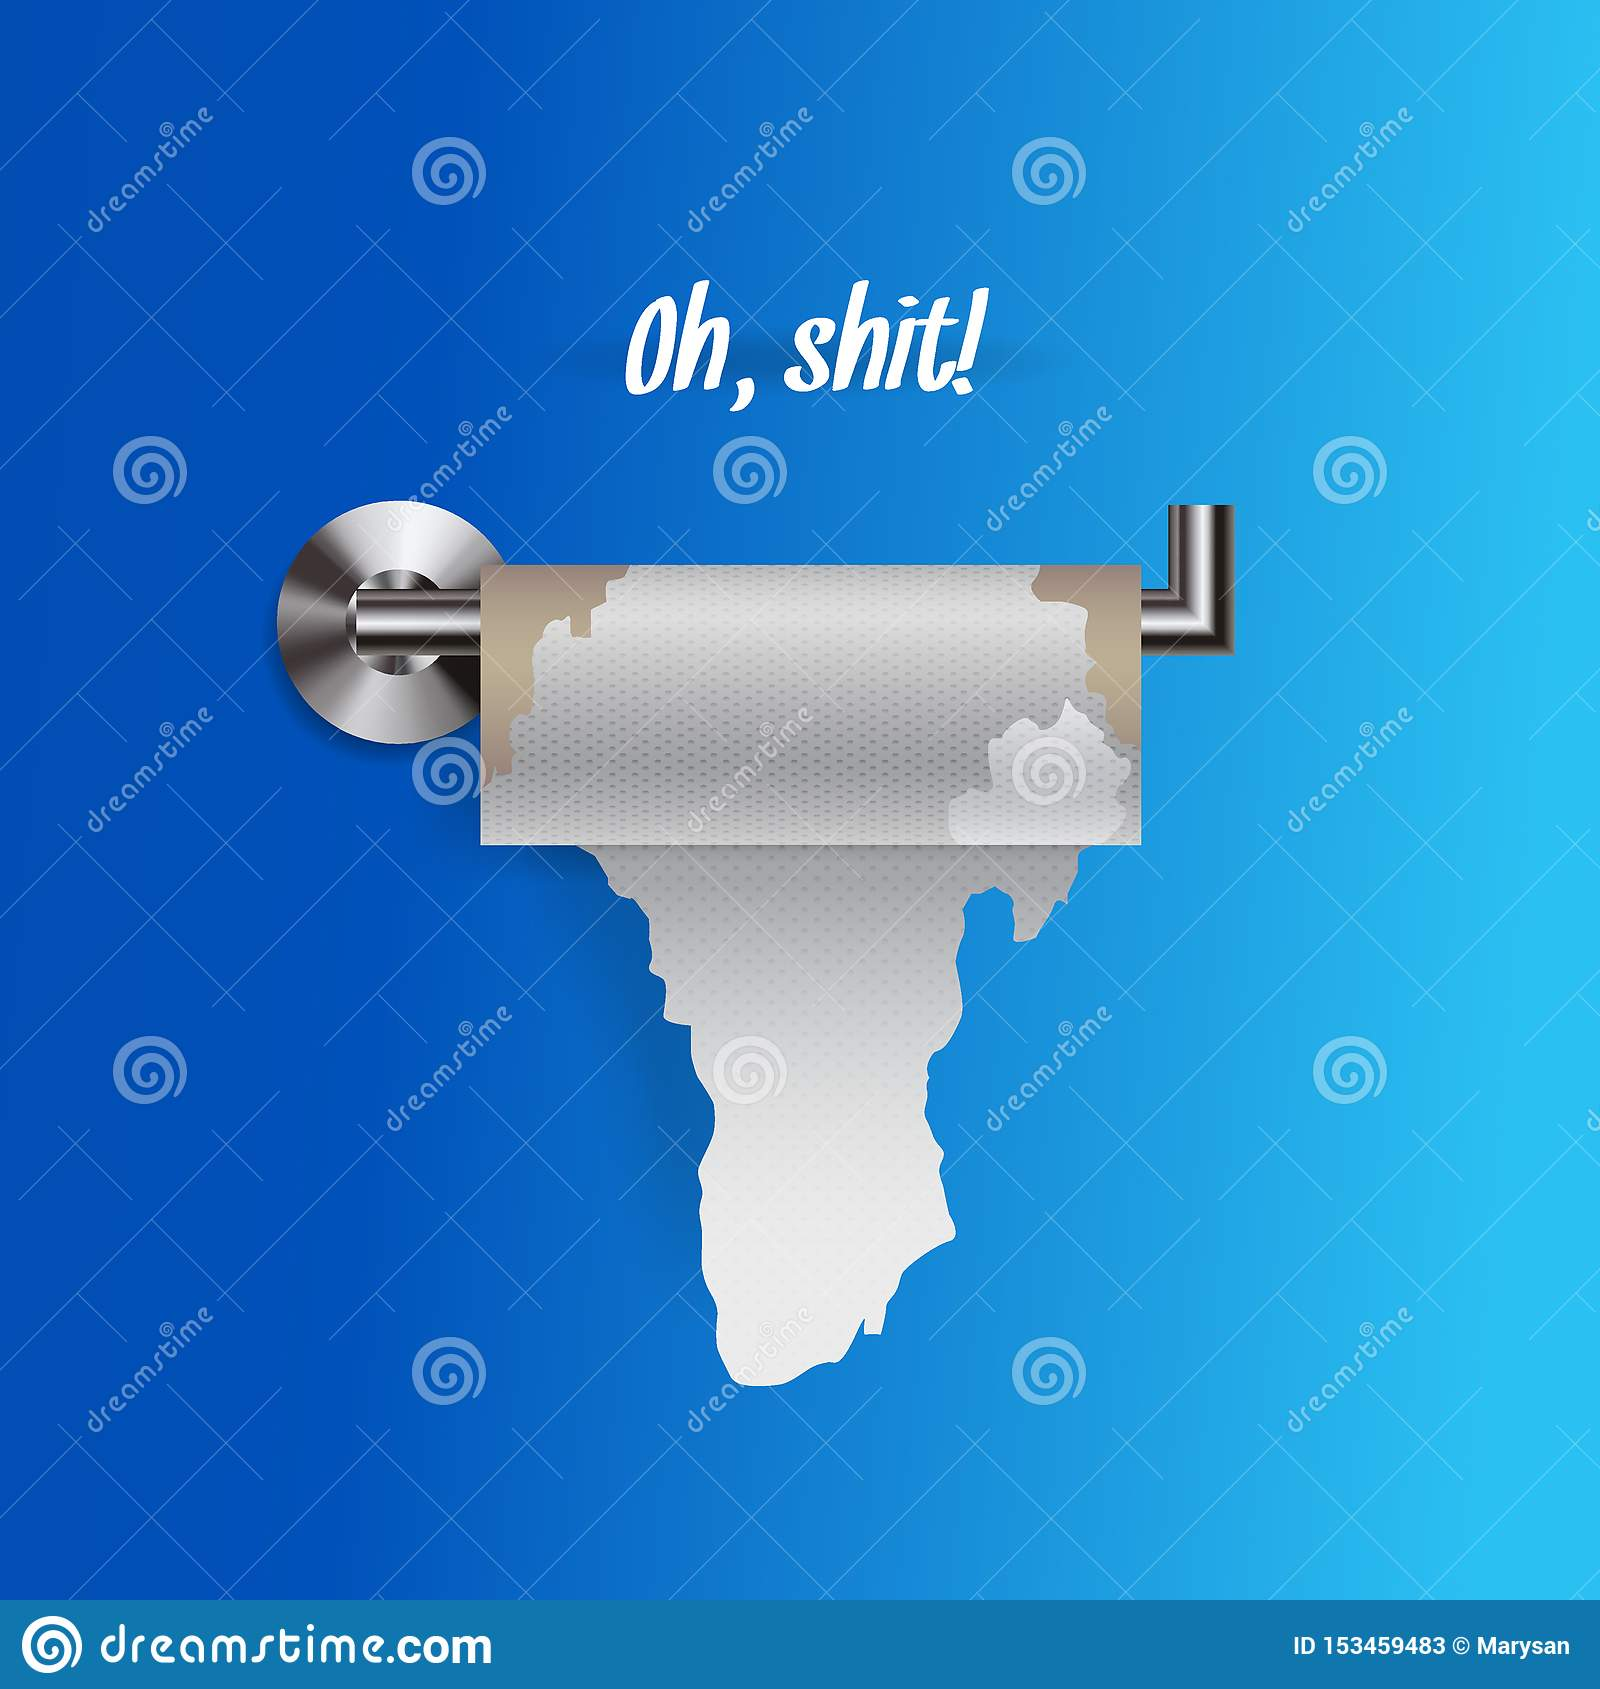 Joke concept of nearly empty torn toilet paper on a holder, realistic toilet paper vector illustration